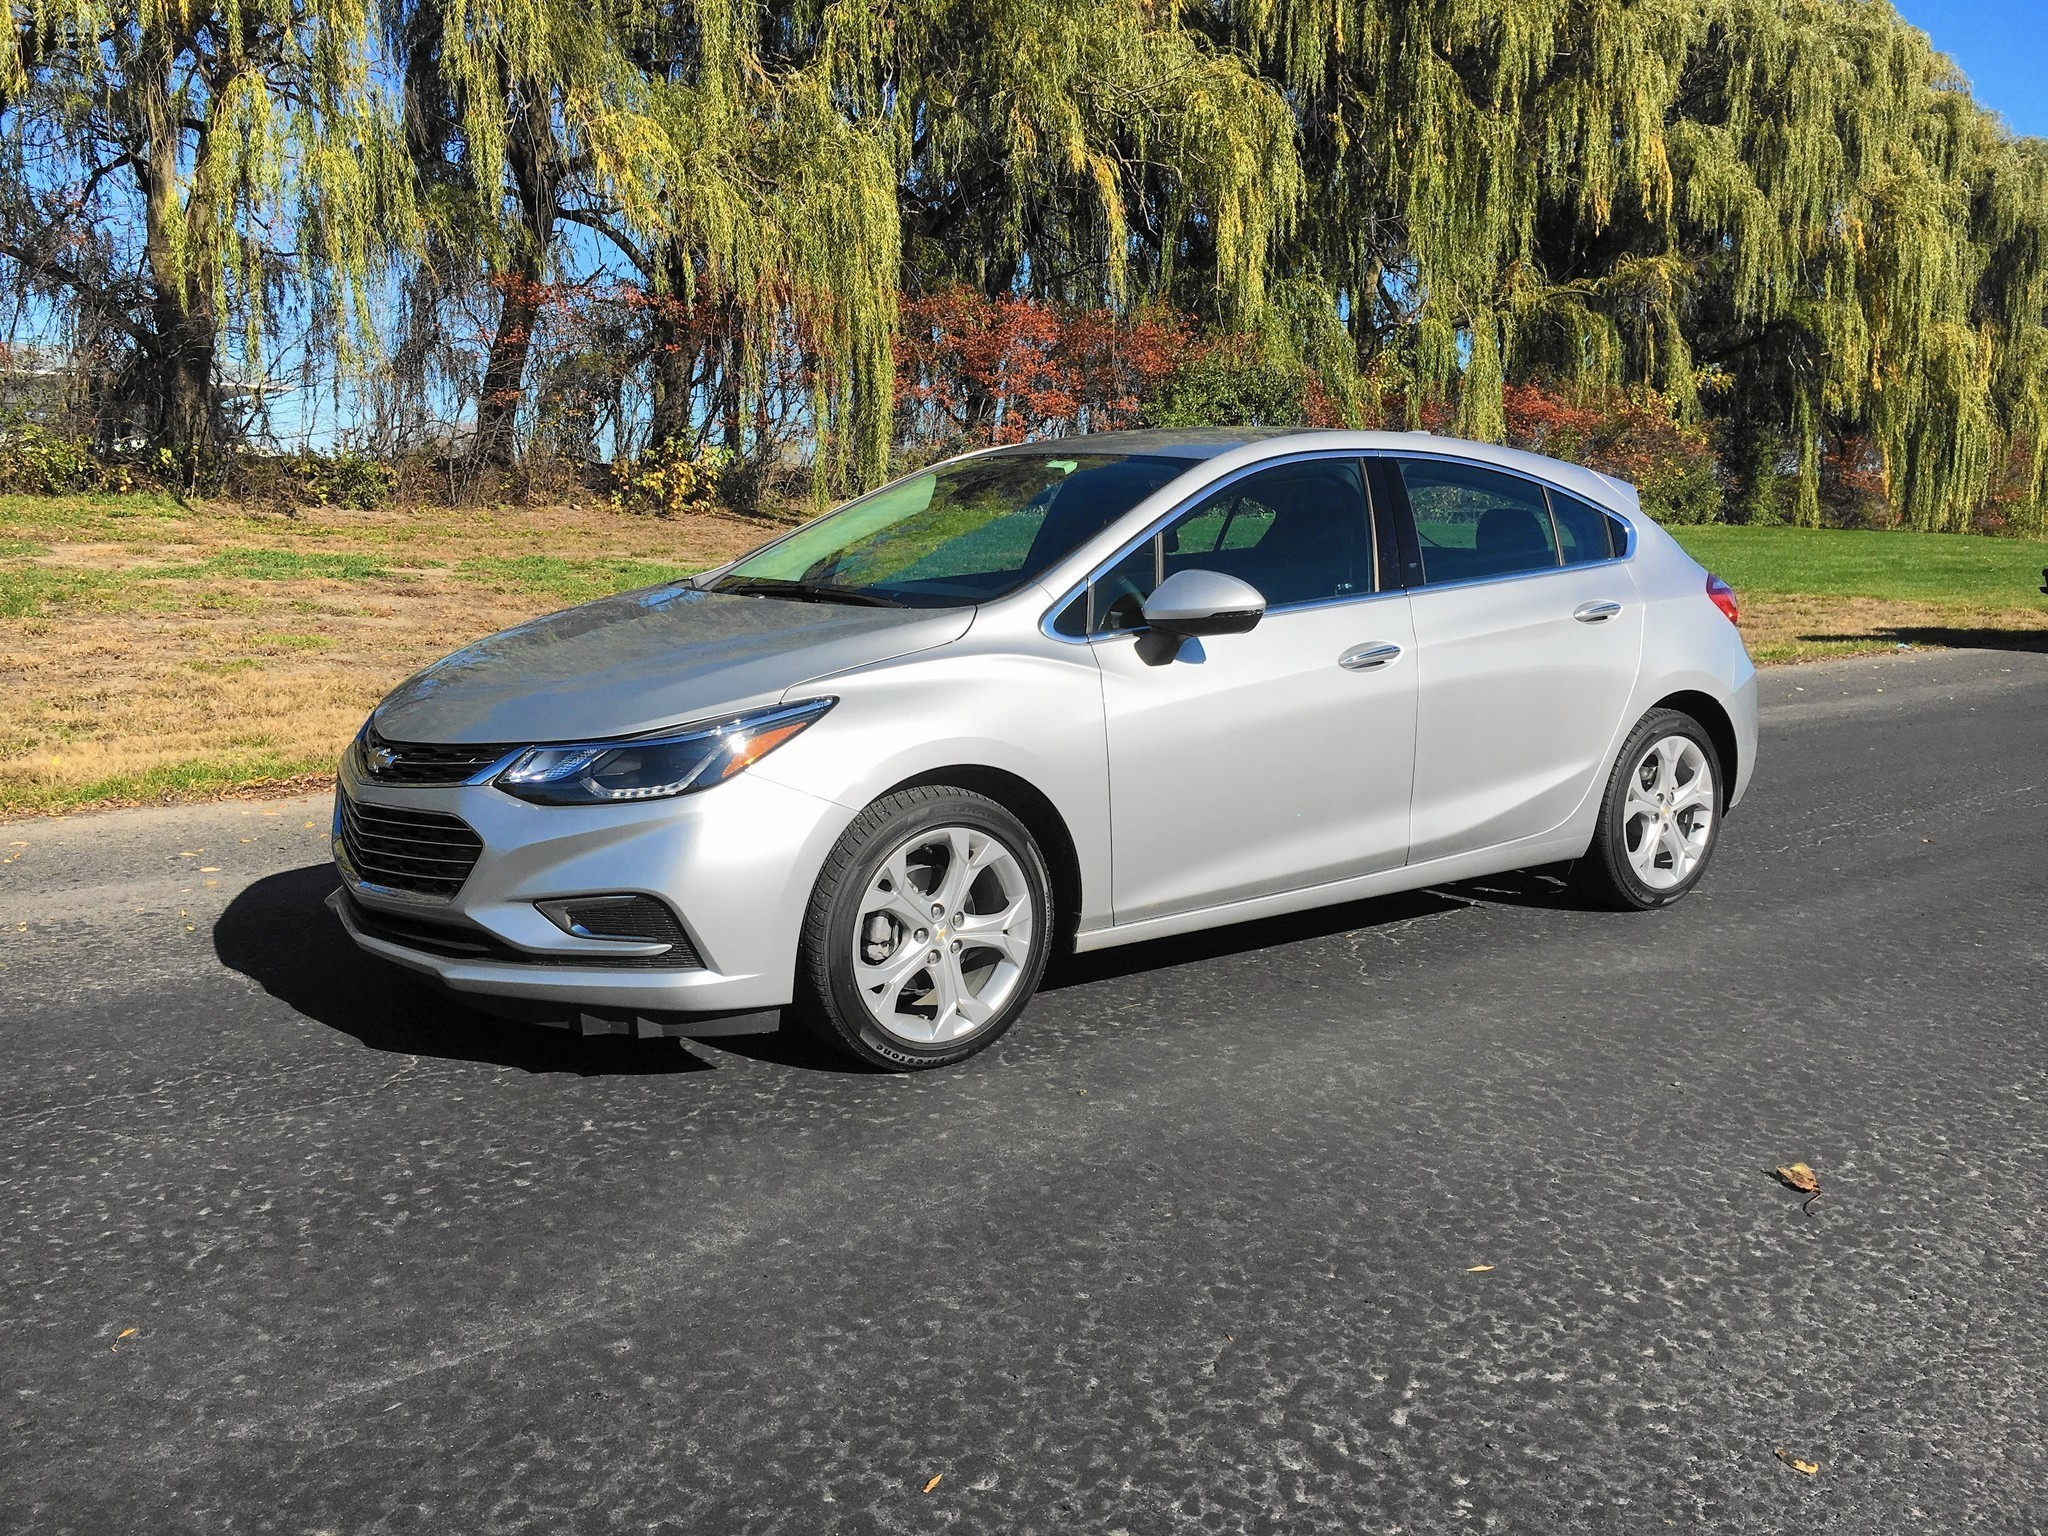 2017 chevrolet cruze hatch opens up alternatives to compacts and crossovers chicago tribune